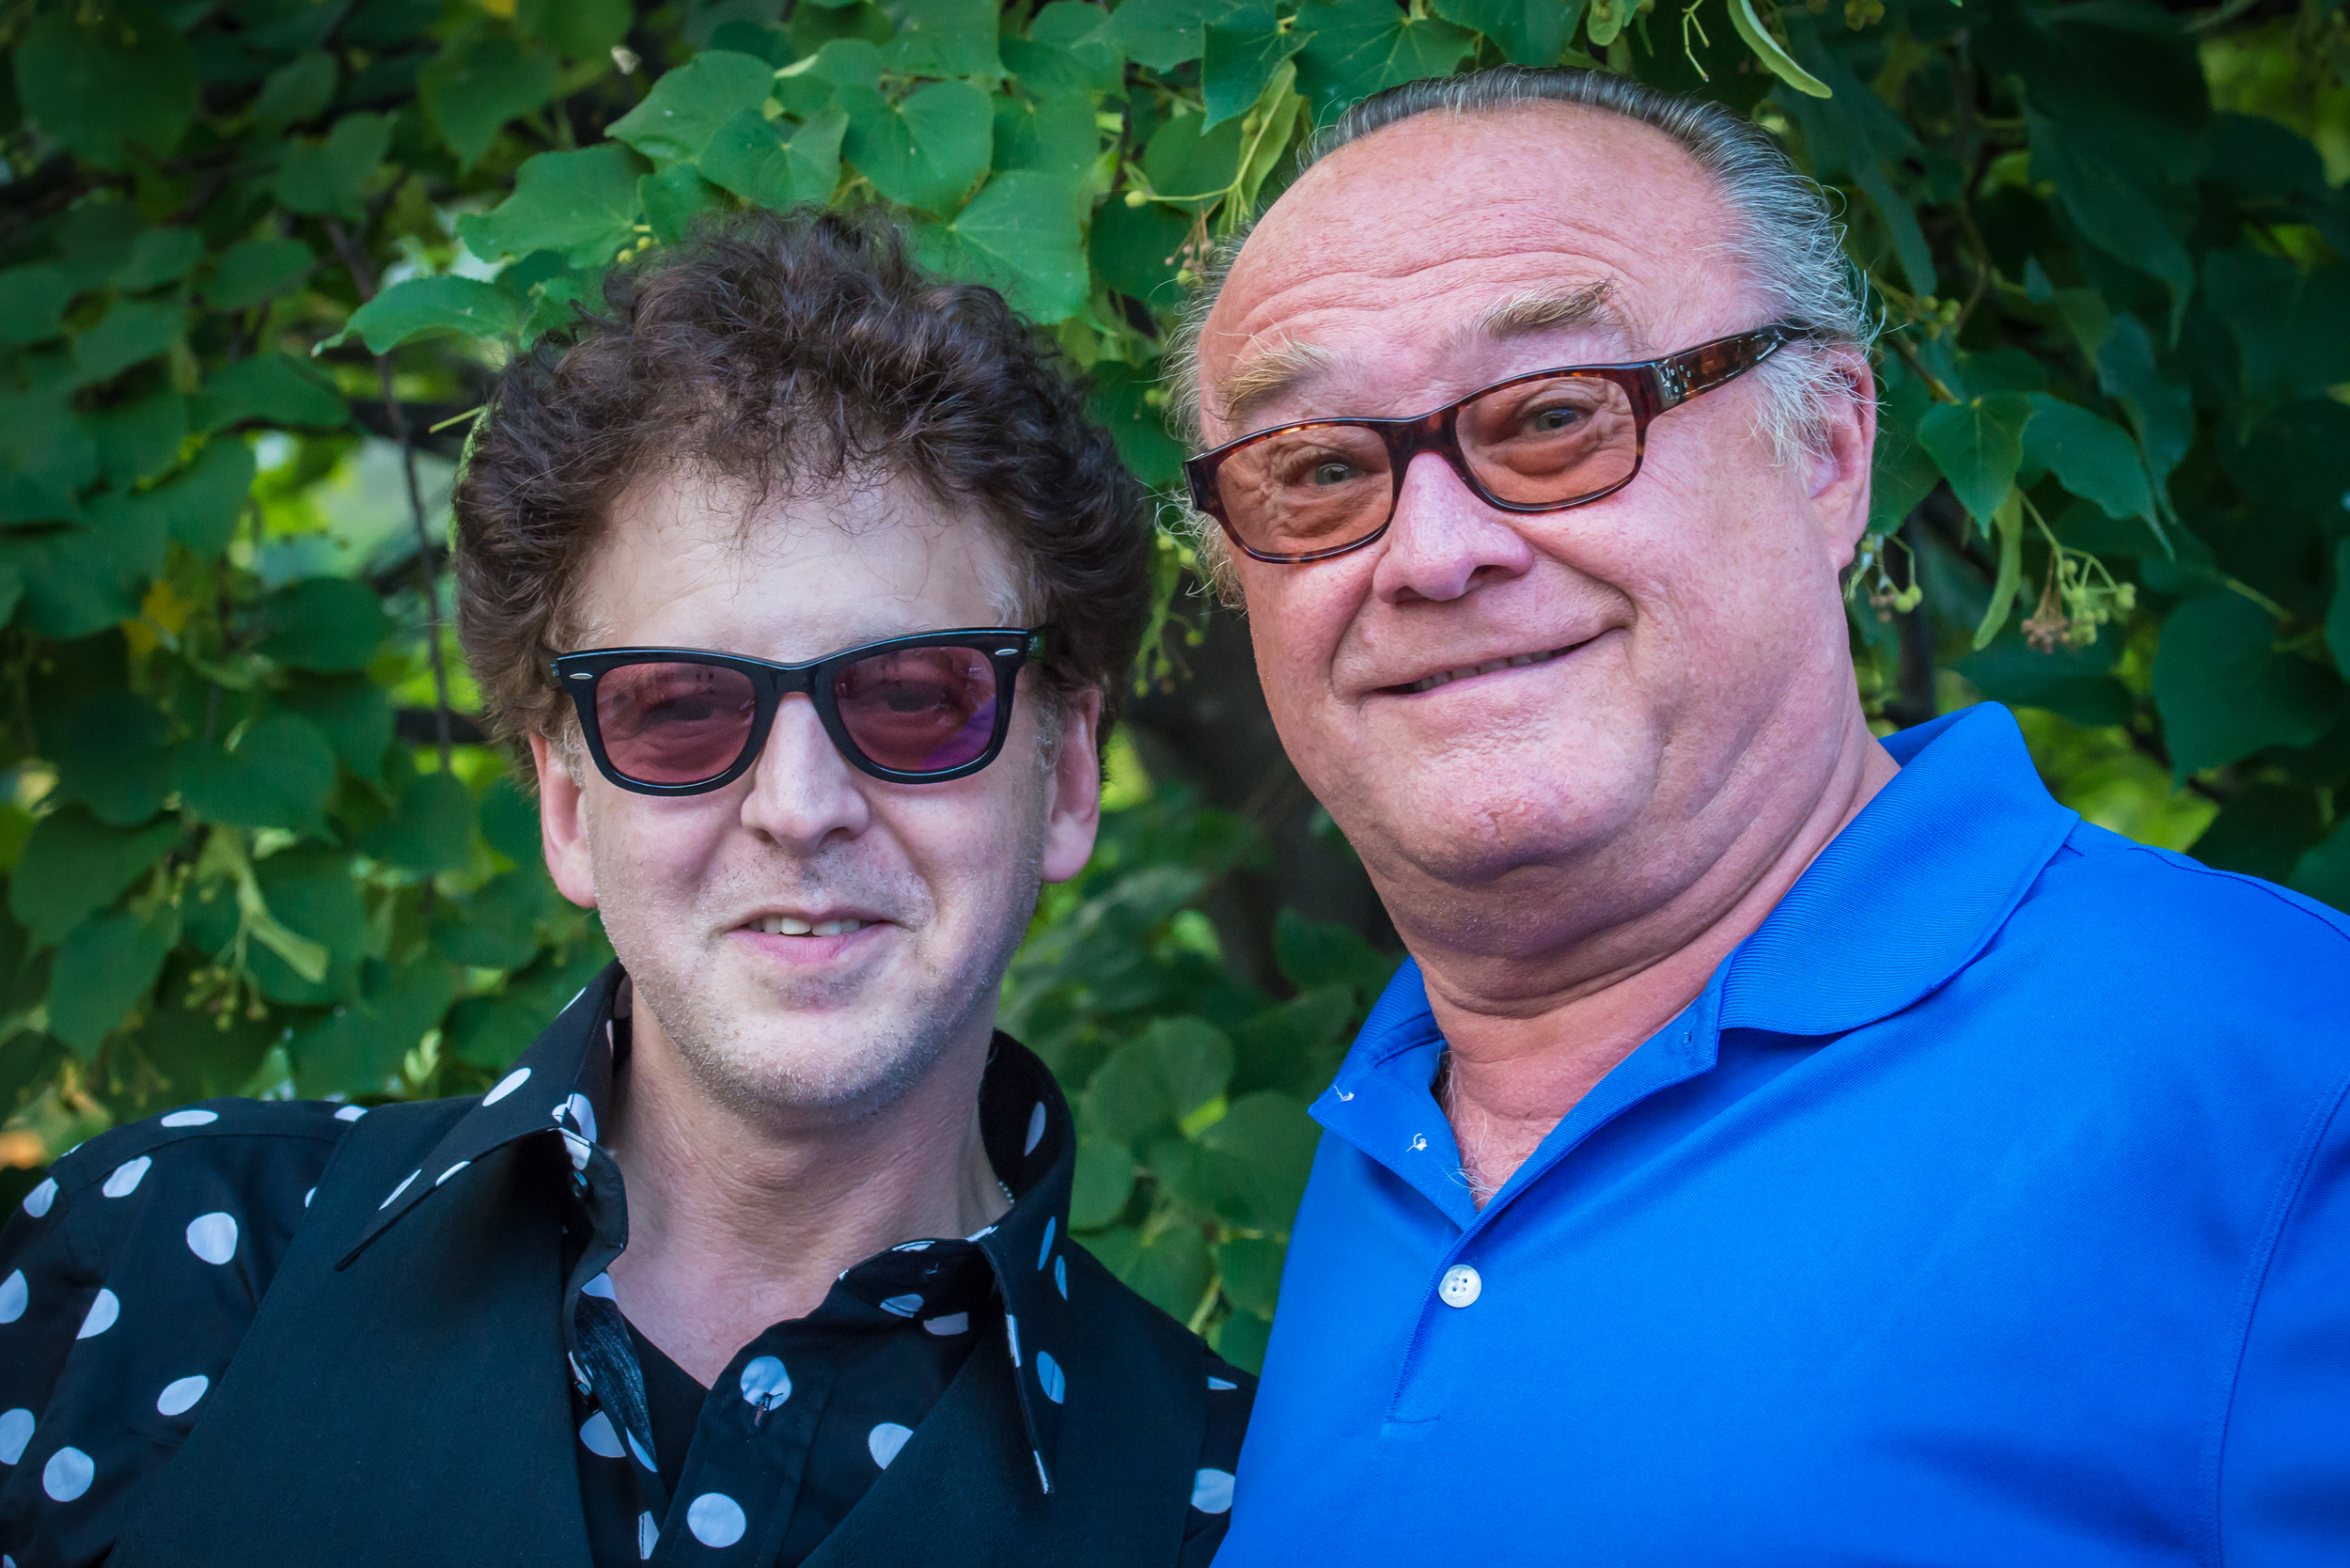 Magic Marc and John Geenen / Salute to the Music of Bob Dylan / The Veterans' Memorial Wolfe Park Amphitheater / St. Louis Park, Minnesota / August 9th, 2014 / Photo by Don Olson